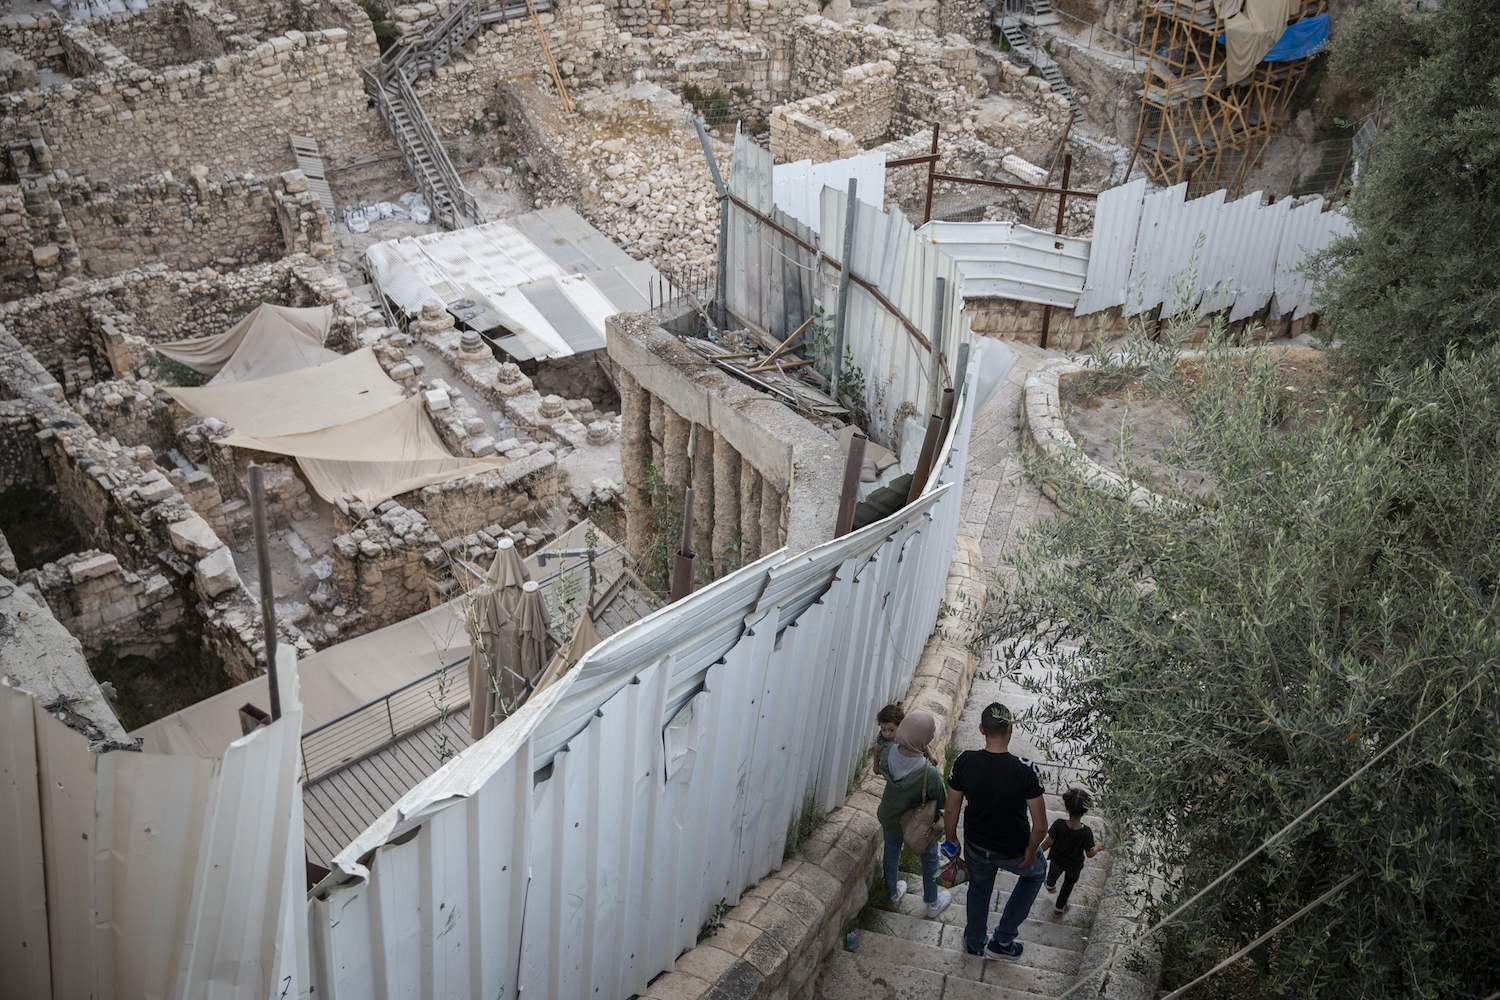 Palestinian residents walk down the stairs next to a fence surrounding the Givati parking lot excavation grounds, as they enter the Palestinian neighborhood of Silwan in occupied East Jerusalem, near the City of David National Park, July 14, 2019. (Hadas Parush/Flash90)